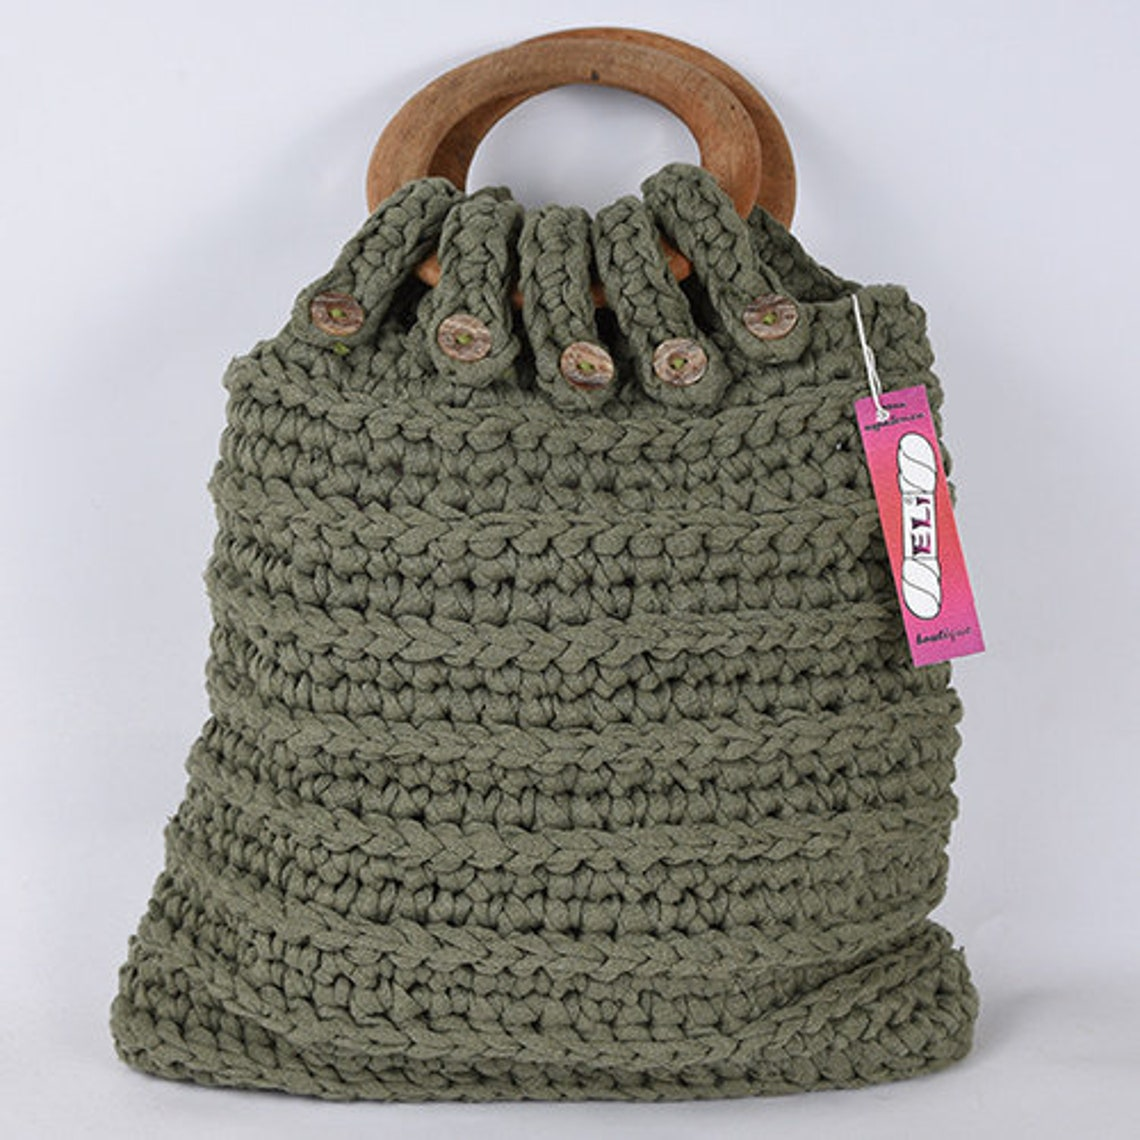 Eco Cotton Military Green Crochet Handbag With Wooden Handles Etsy